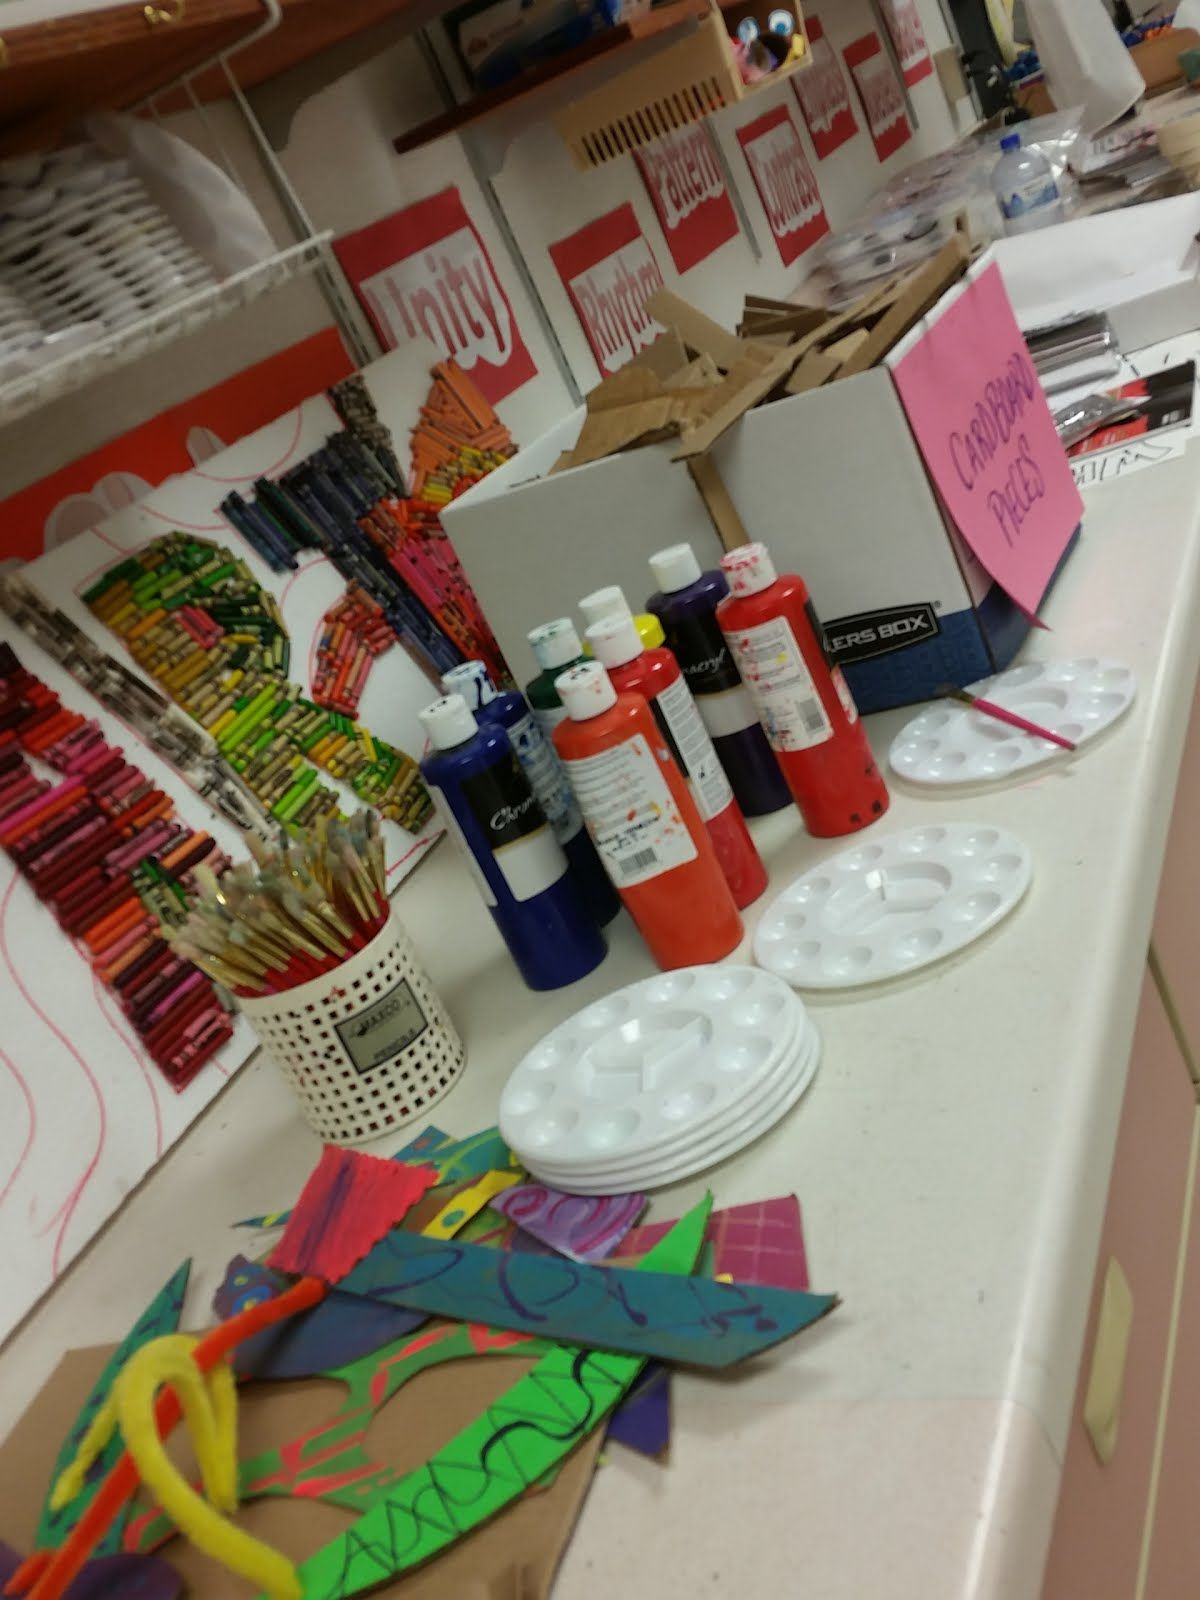 Early Finishers Frank Stella Project & Early Finishers Frank Stella Project | Lesson Plan Ideas | Pinterest ...